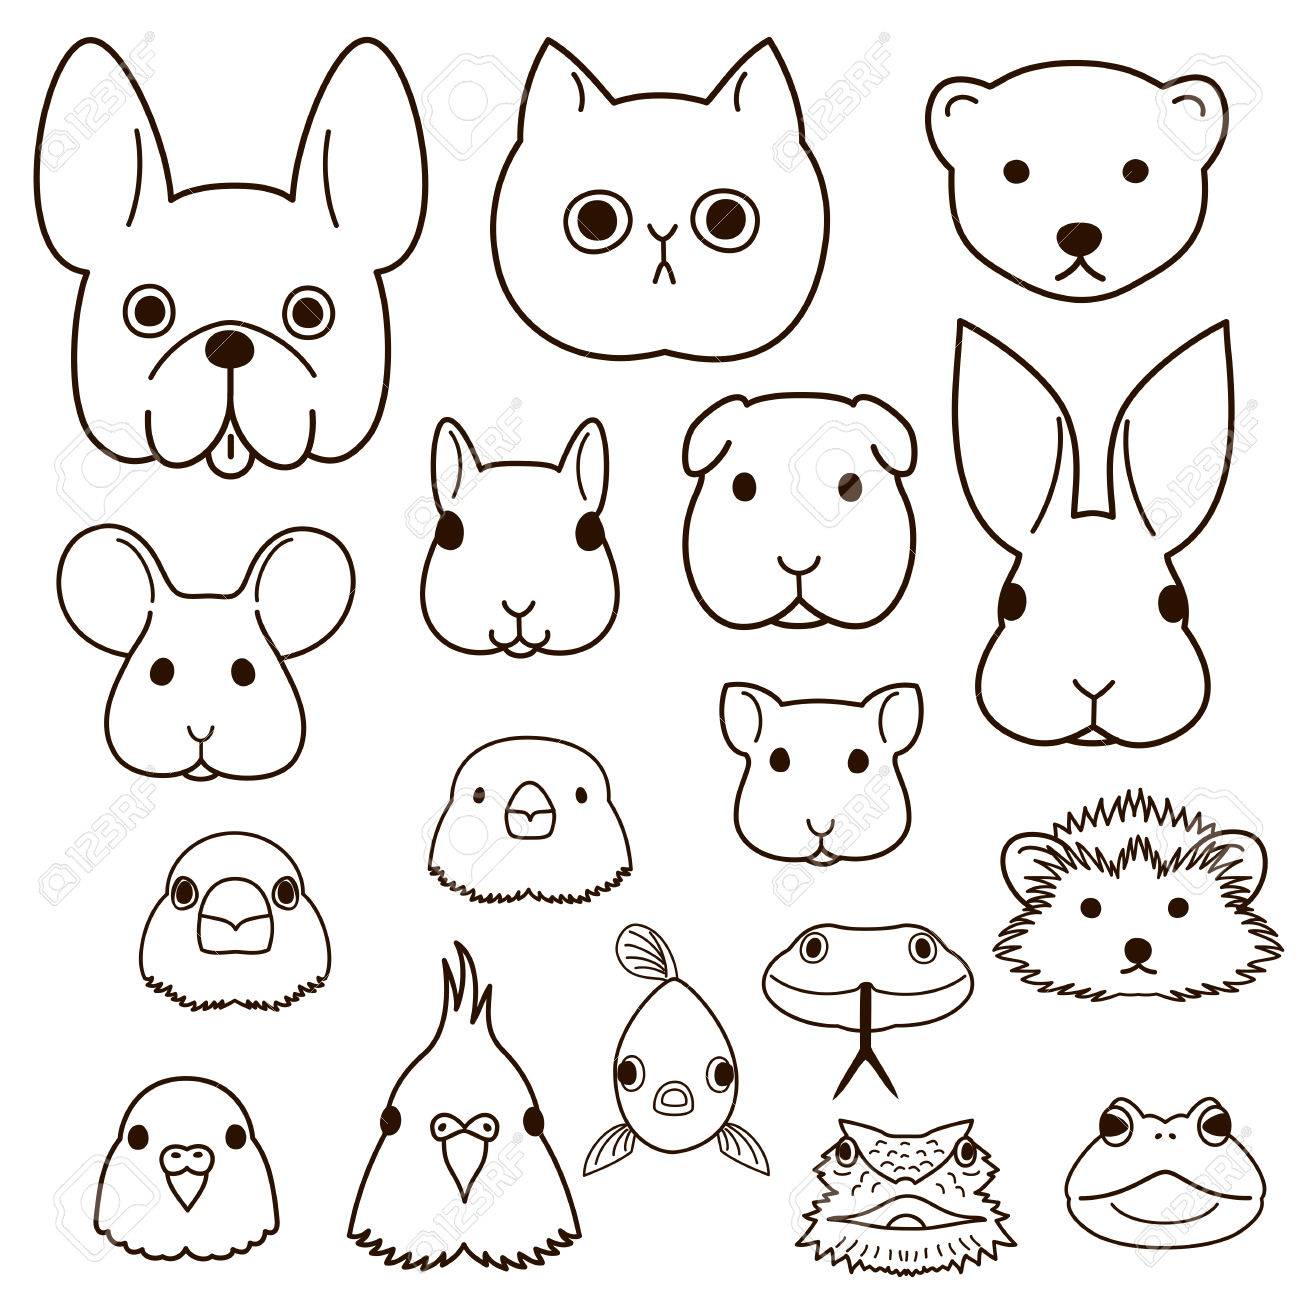 Pet Animals Faces Line Art Set Royalty Free Cliparts Vectors And